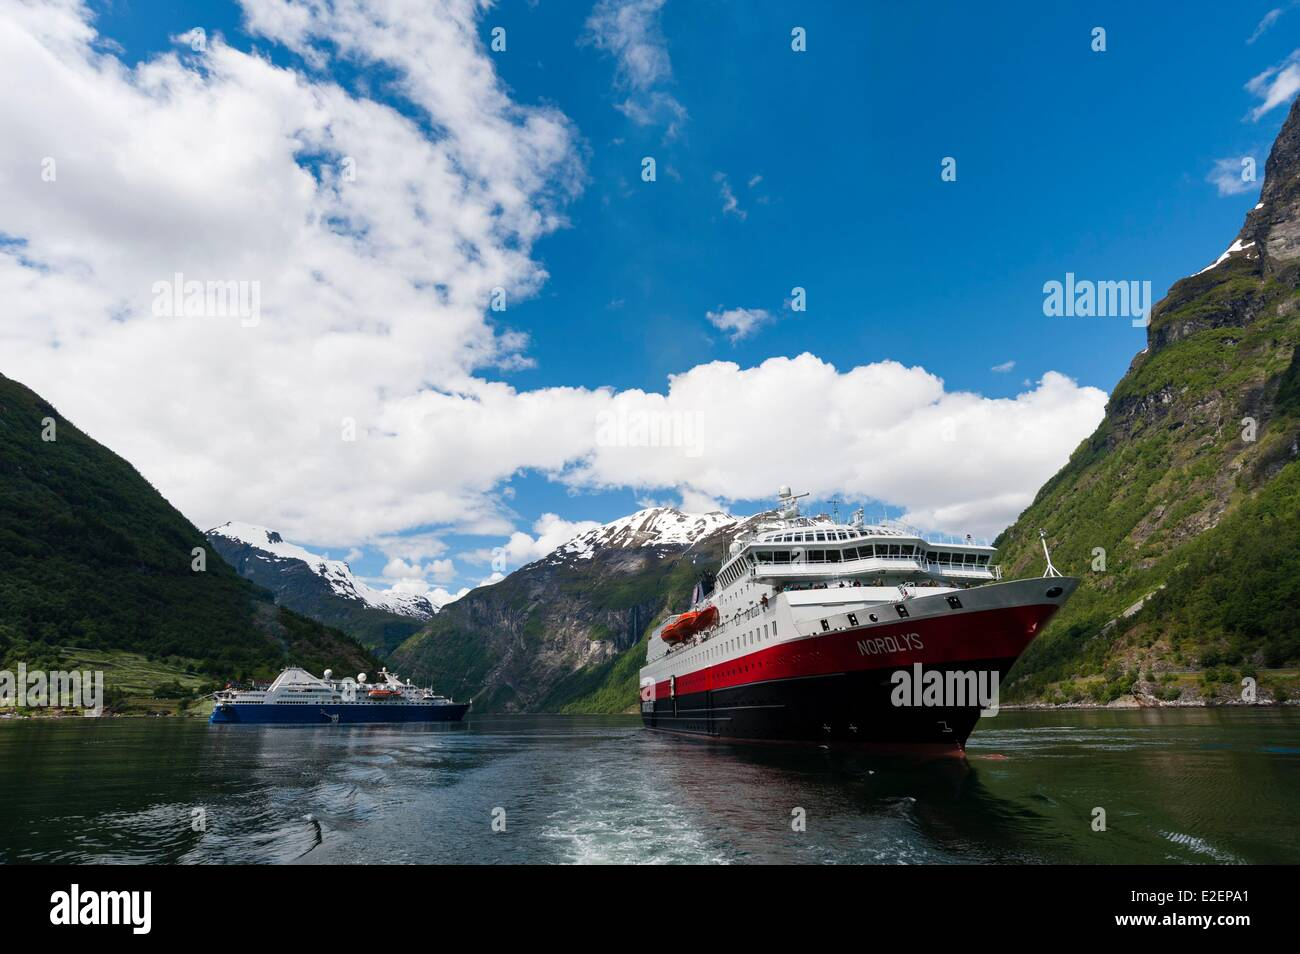 Norway, More og Romsdal County, cruise ships in Geirangerfjord - Stock Image